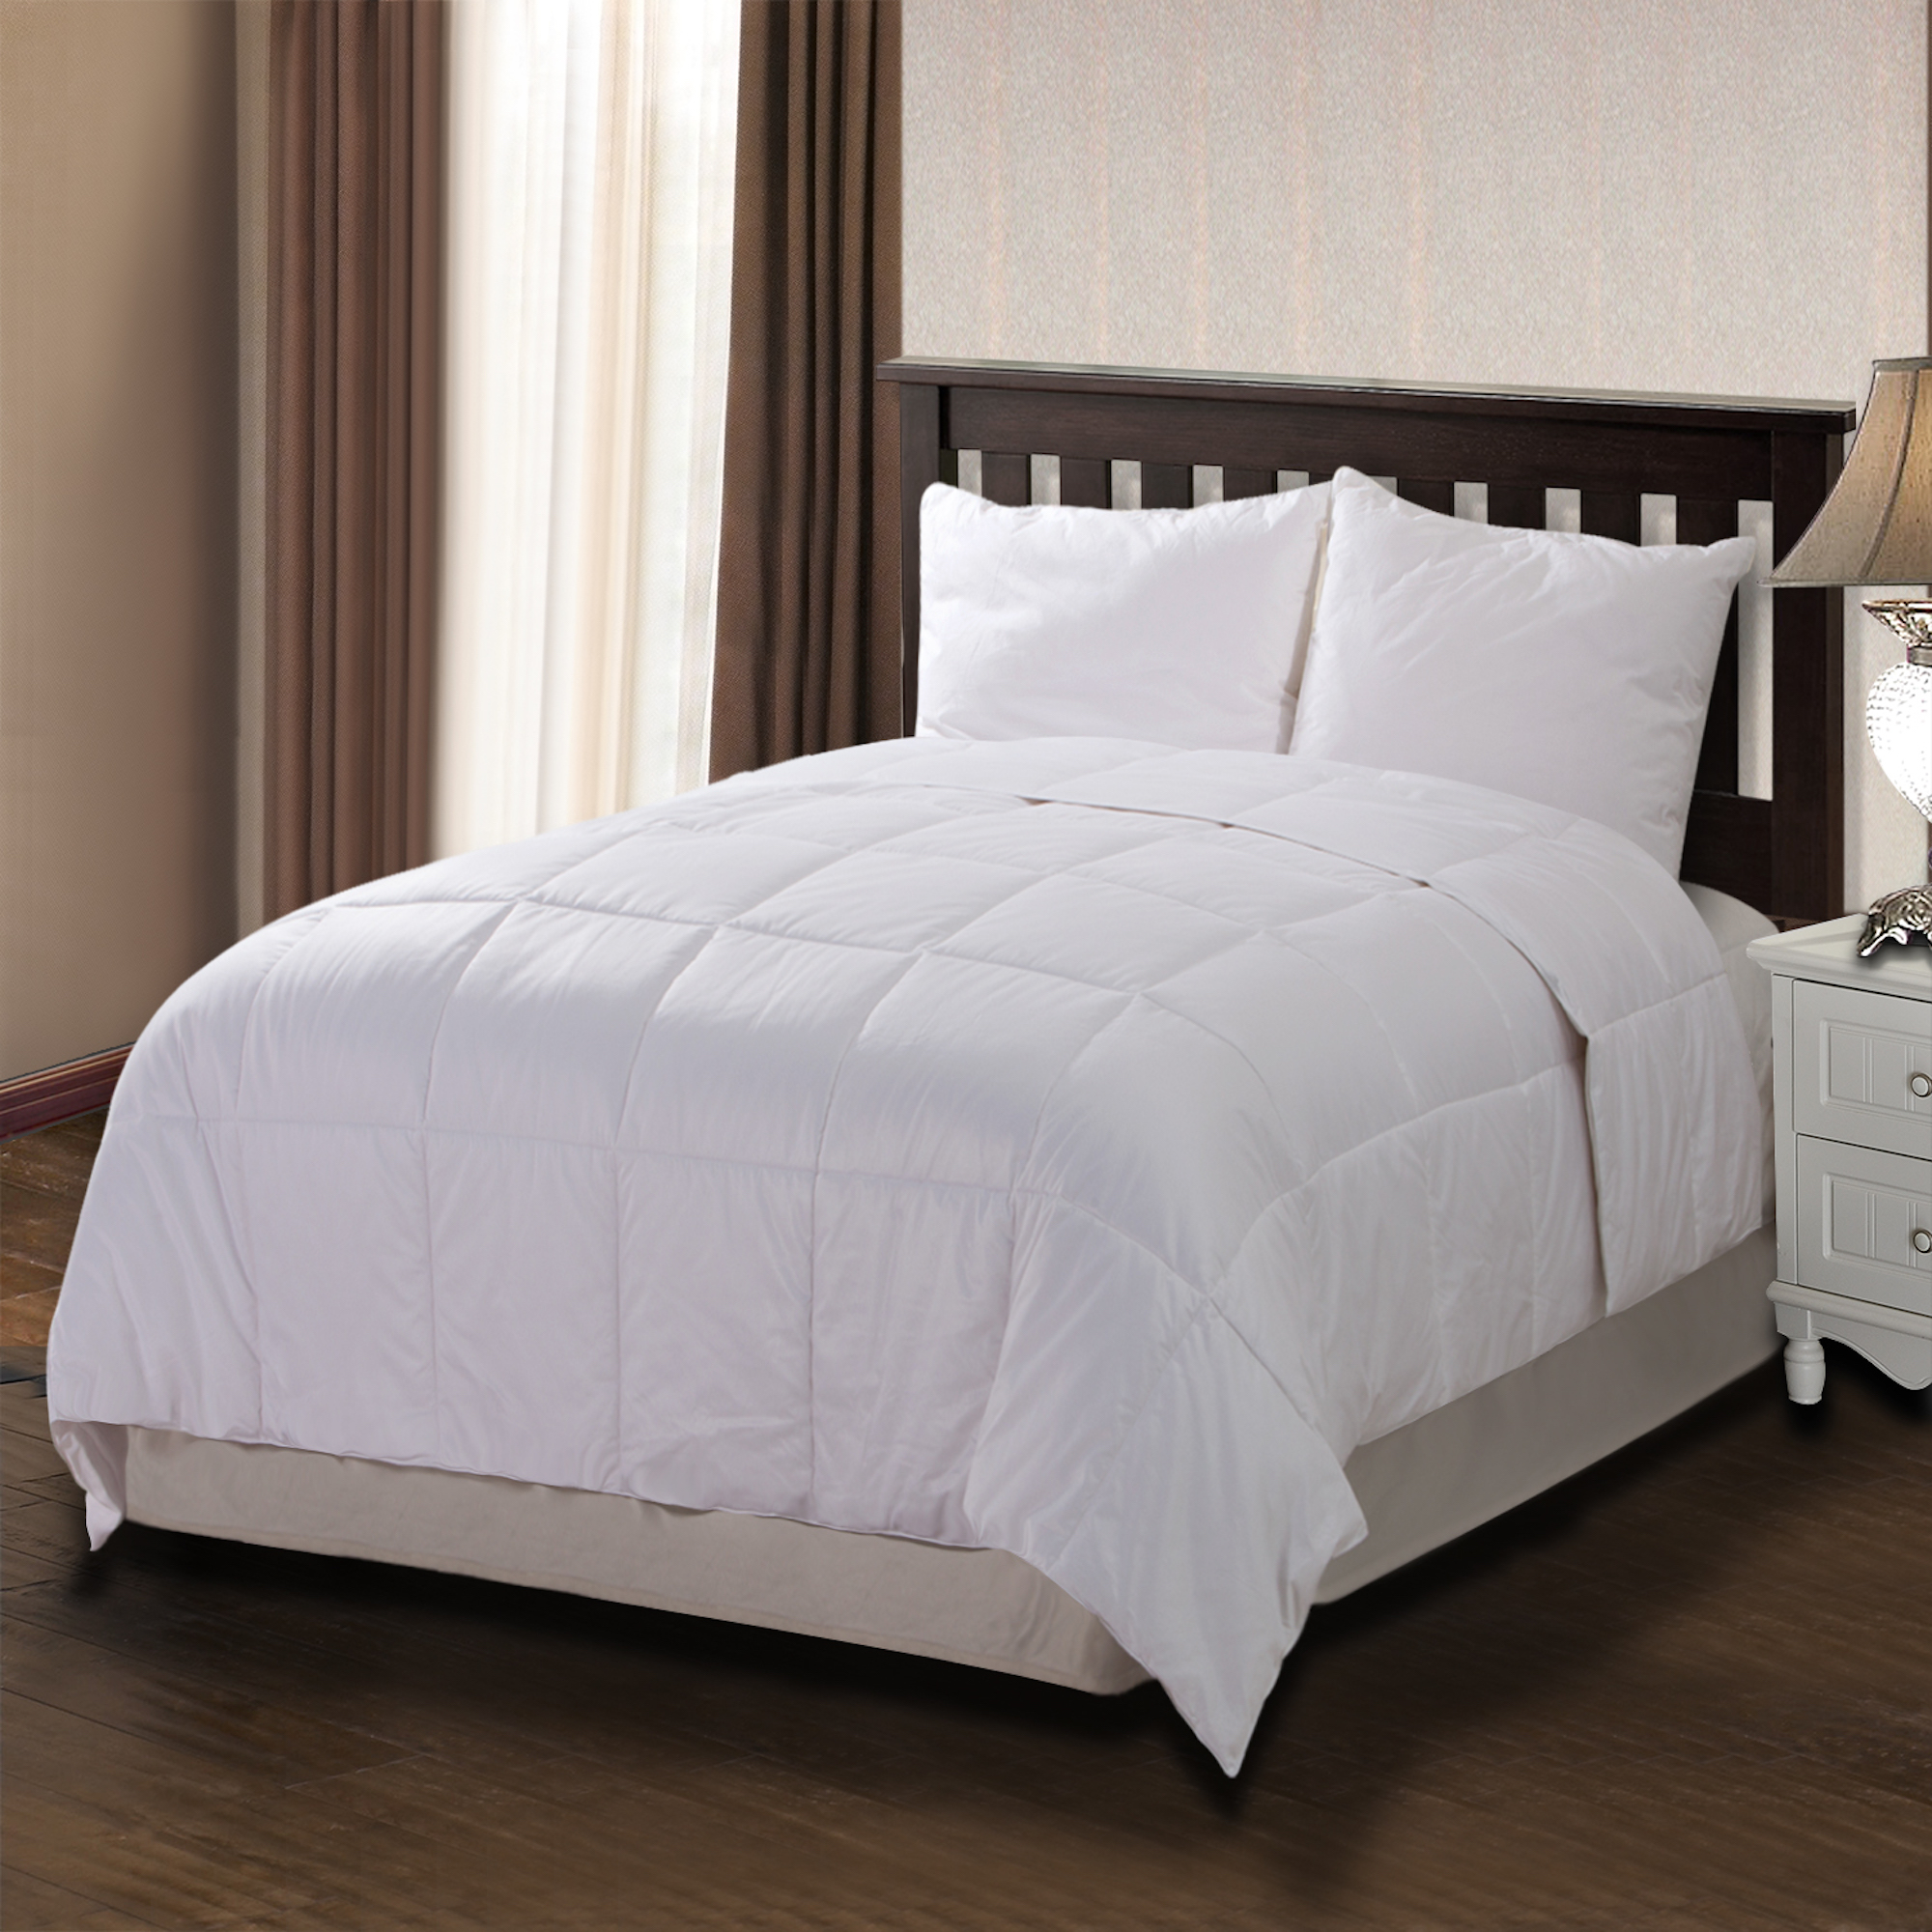 Cottonlux 500 Thread Count Cottonloft Natural